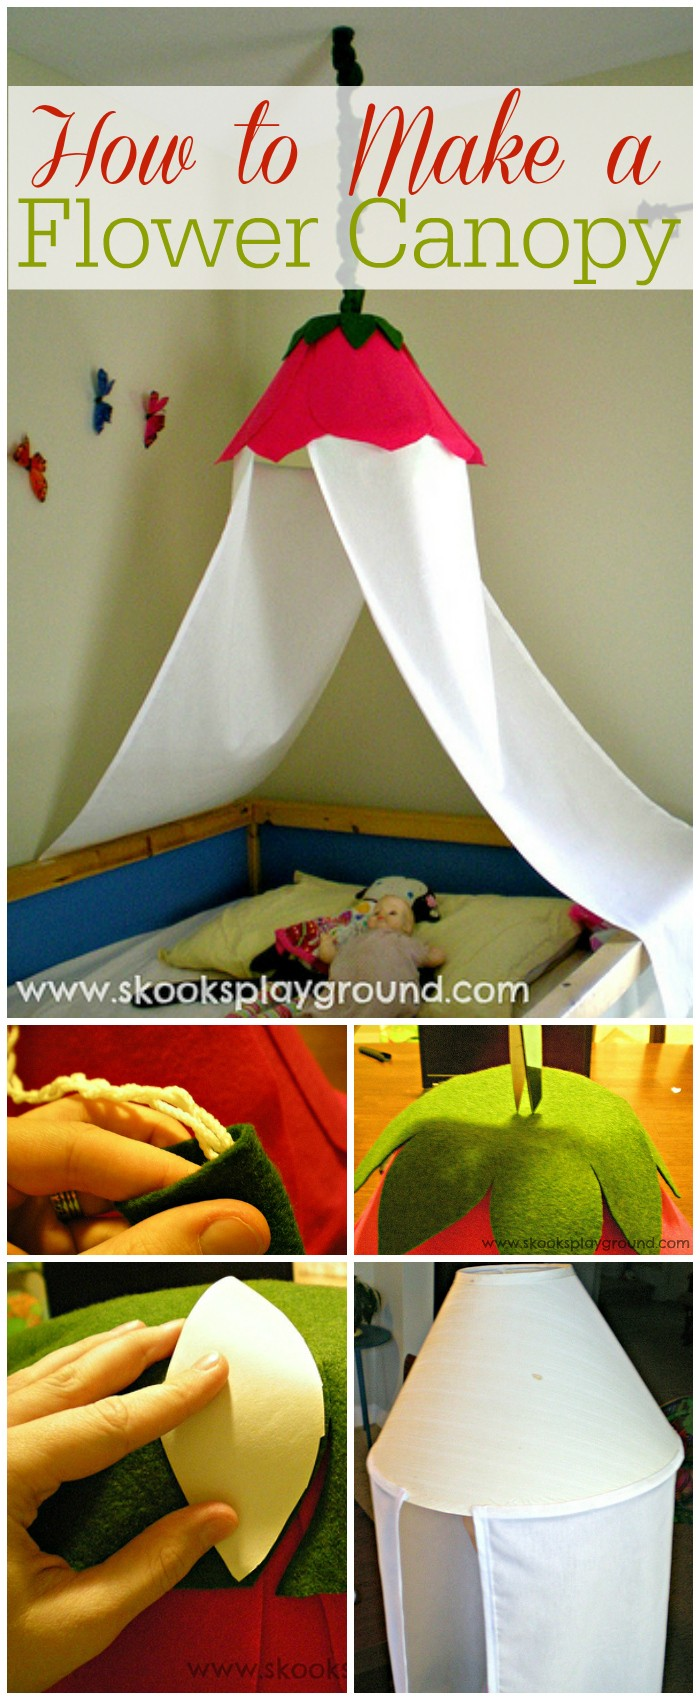 How to Make a Flower Canopy DIY Bed Canopy Ideas Without Spending A Lot